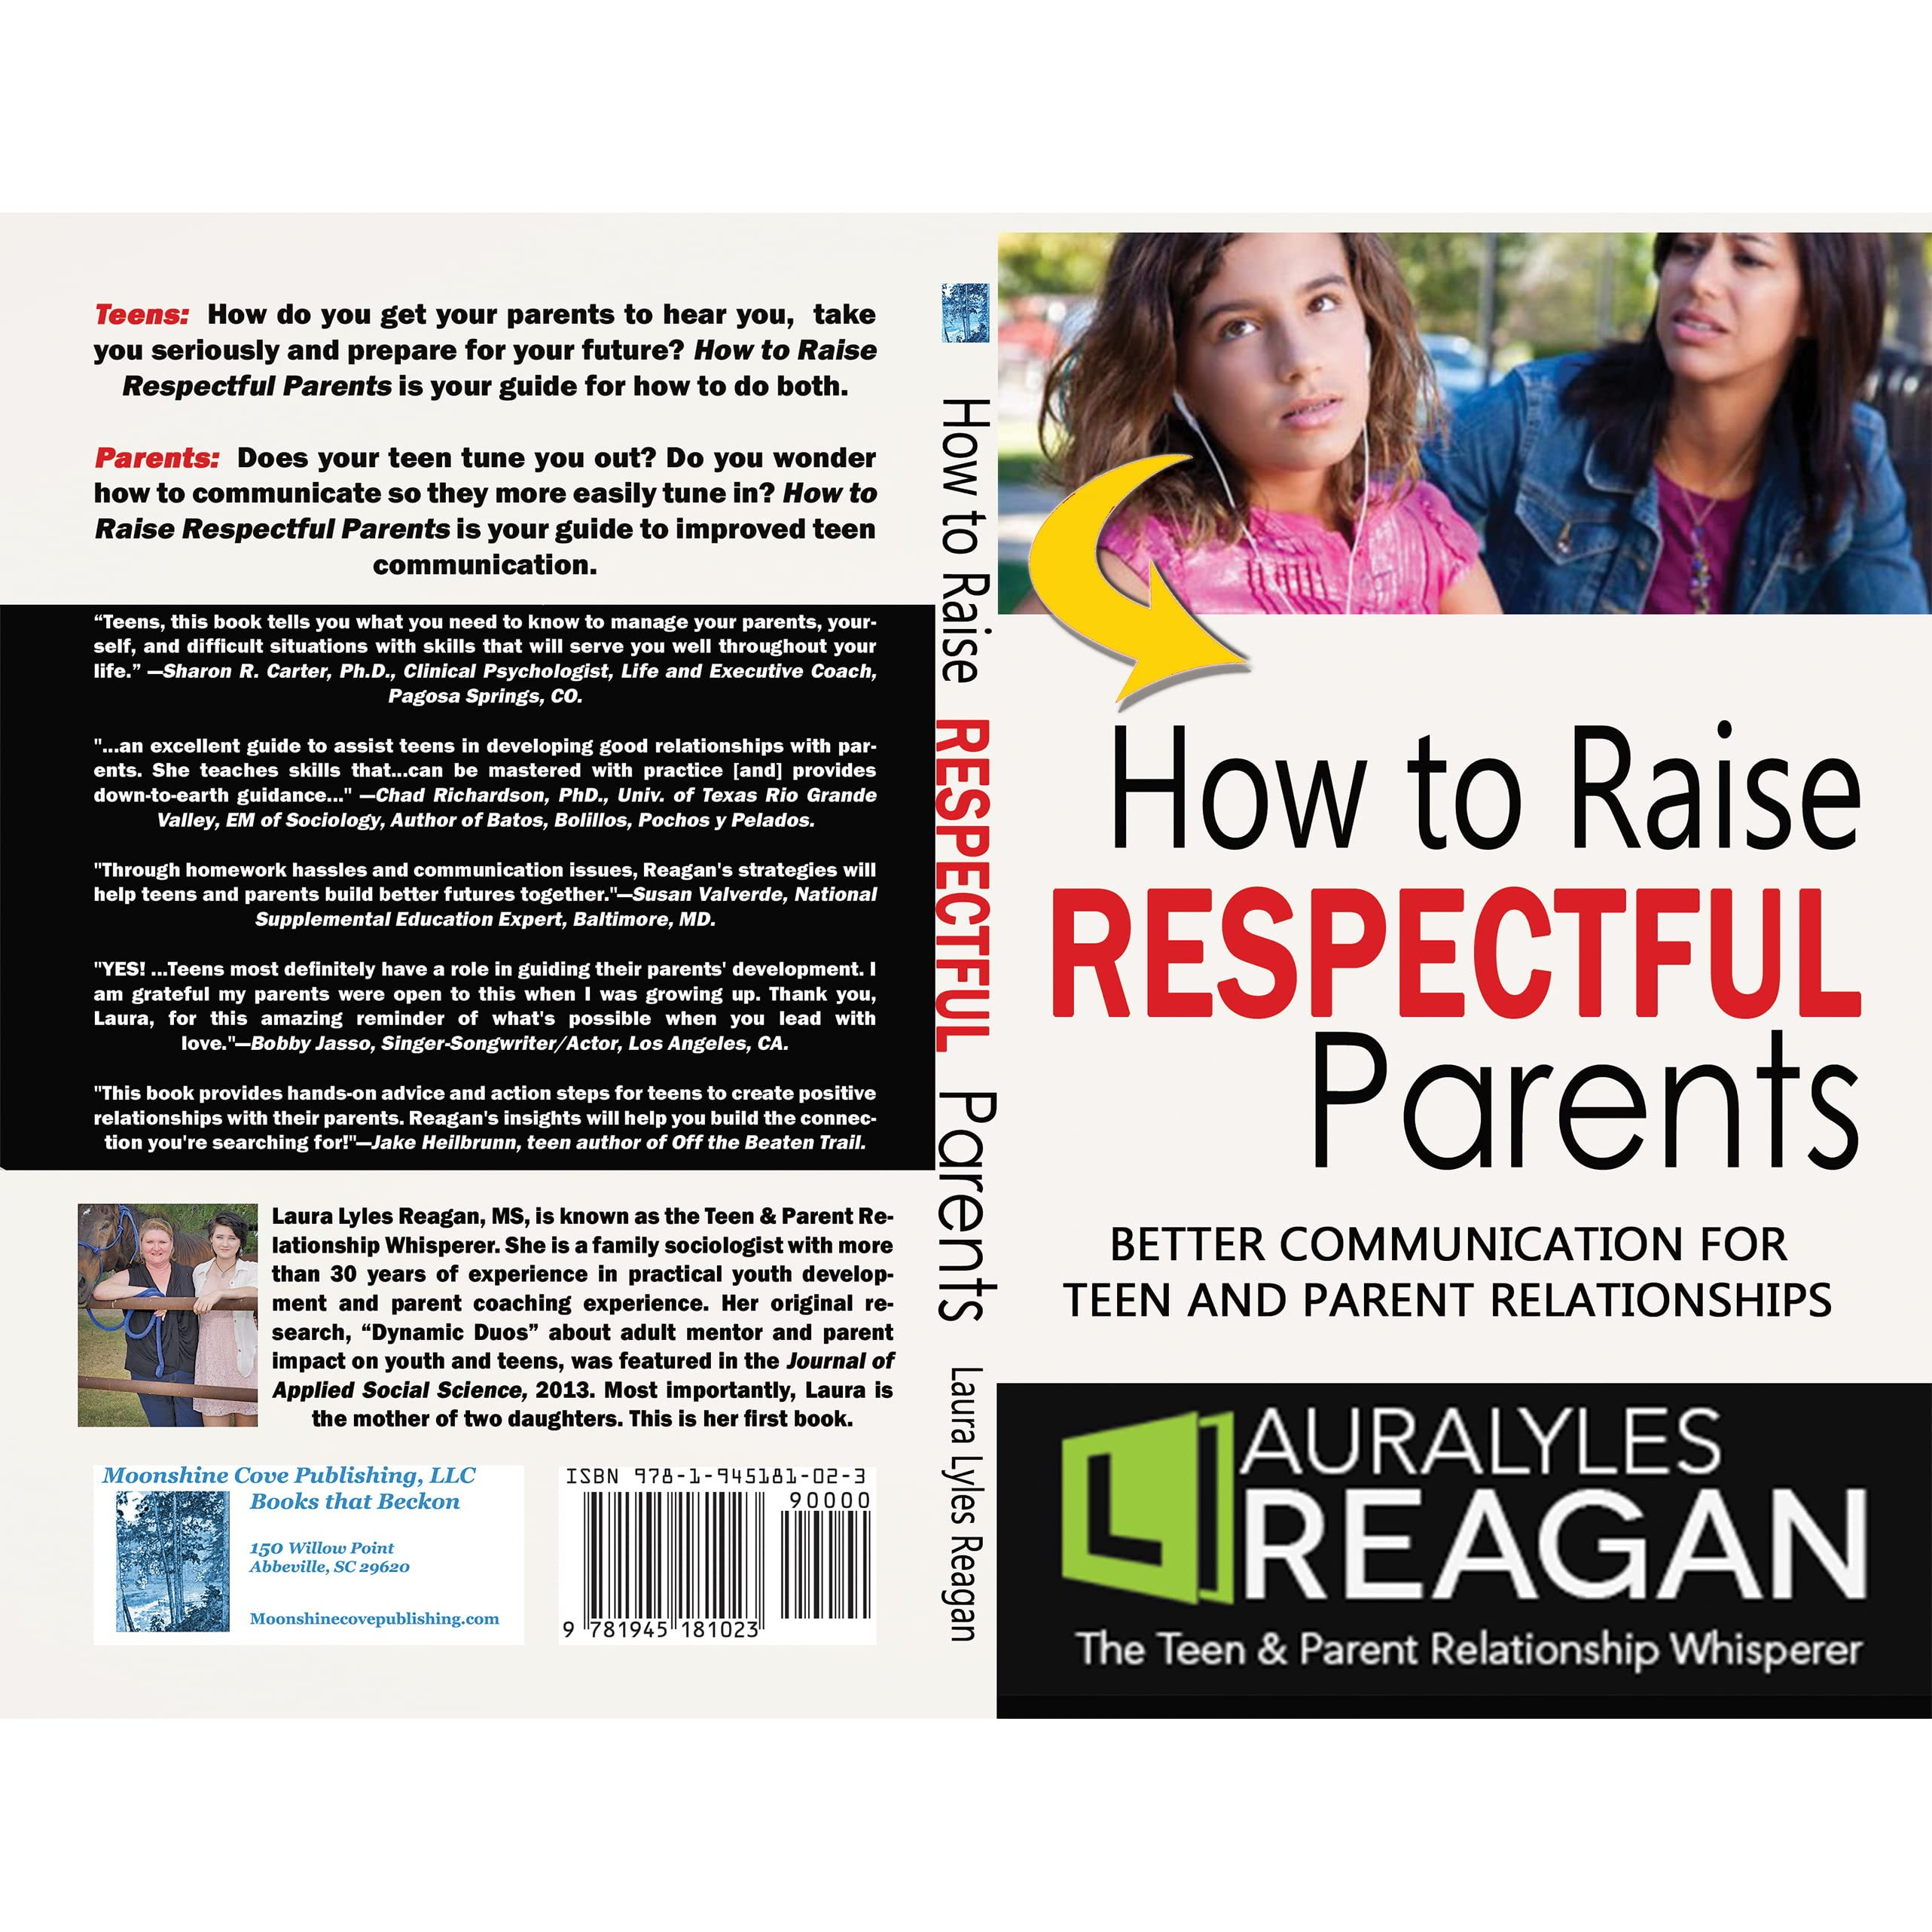 What Teens Need Most From Their Parents >> How To Raise Respectful Parents Better Communication For